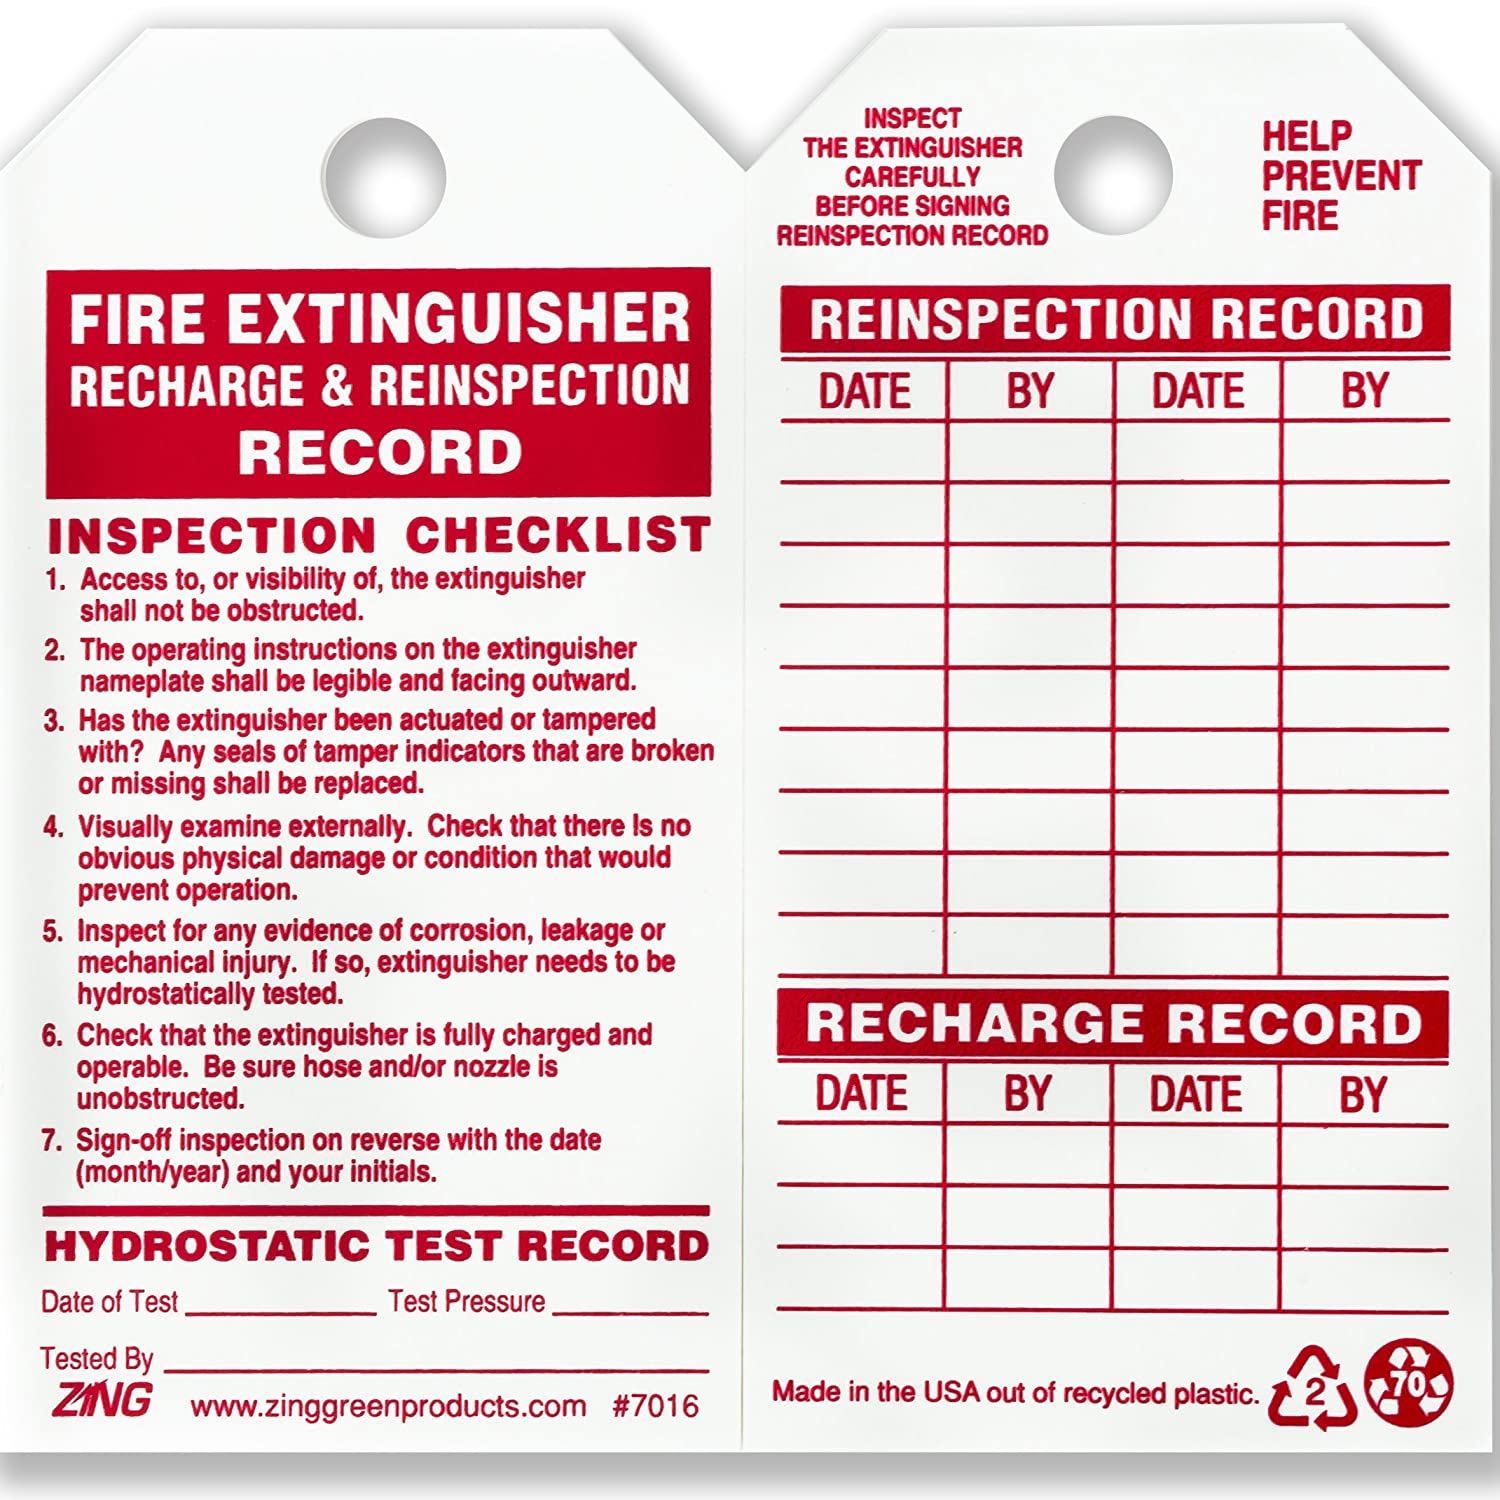 ZING 7016 Eco Safety Tag, Fire Extinguisher, 5 75Hx3W, 10 Pack